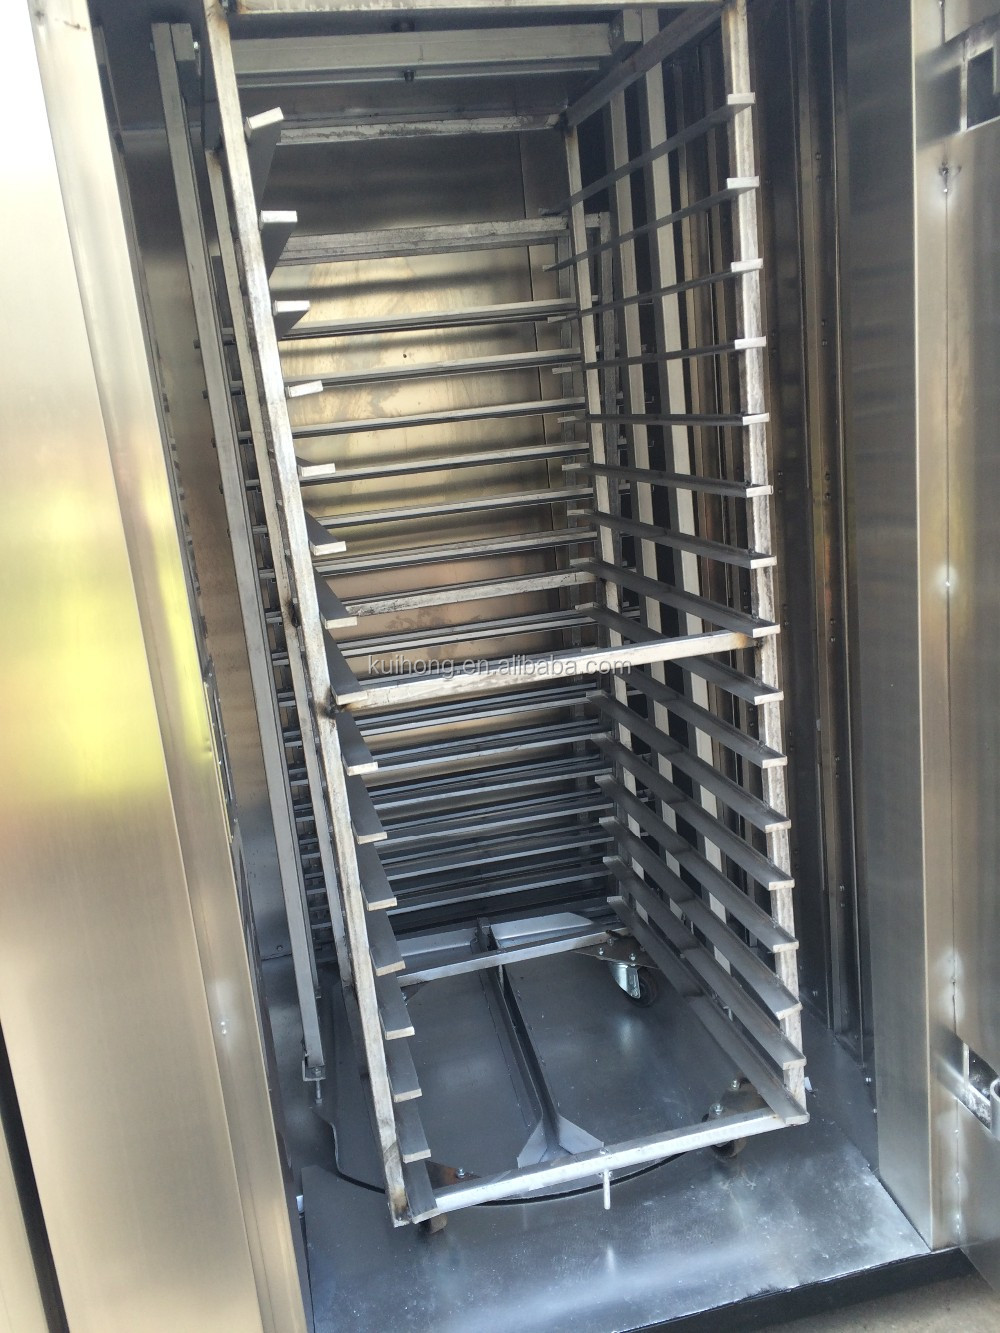 new wholesale bakery rotary oven